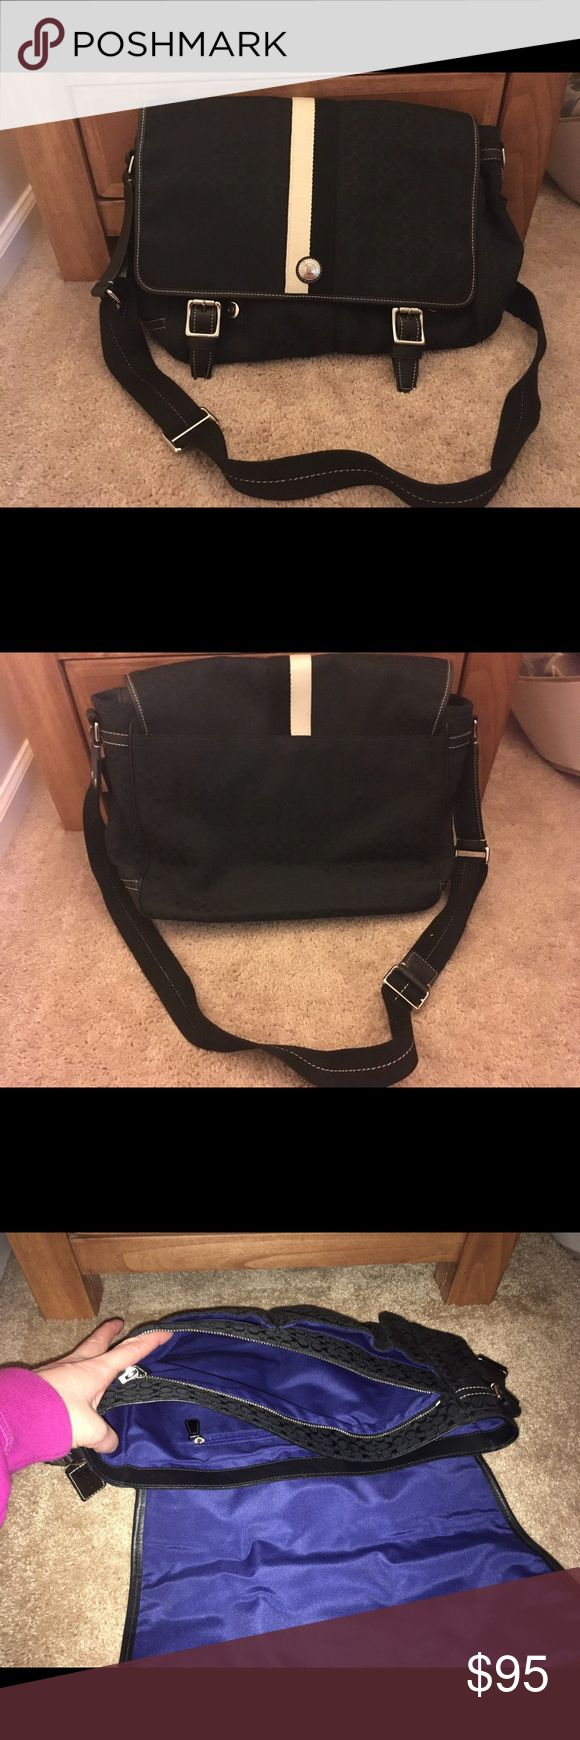 Coach travel bag Like new Coach carry on travel bag that holds a full size Laptop. Two sections inside with outside pockets. Coach Bags Travel Bags